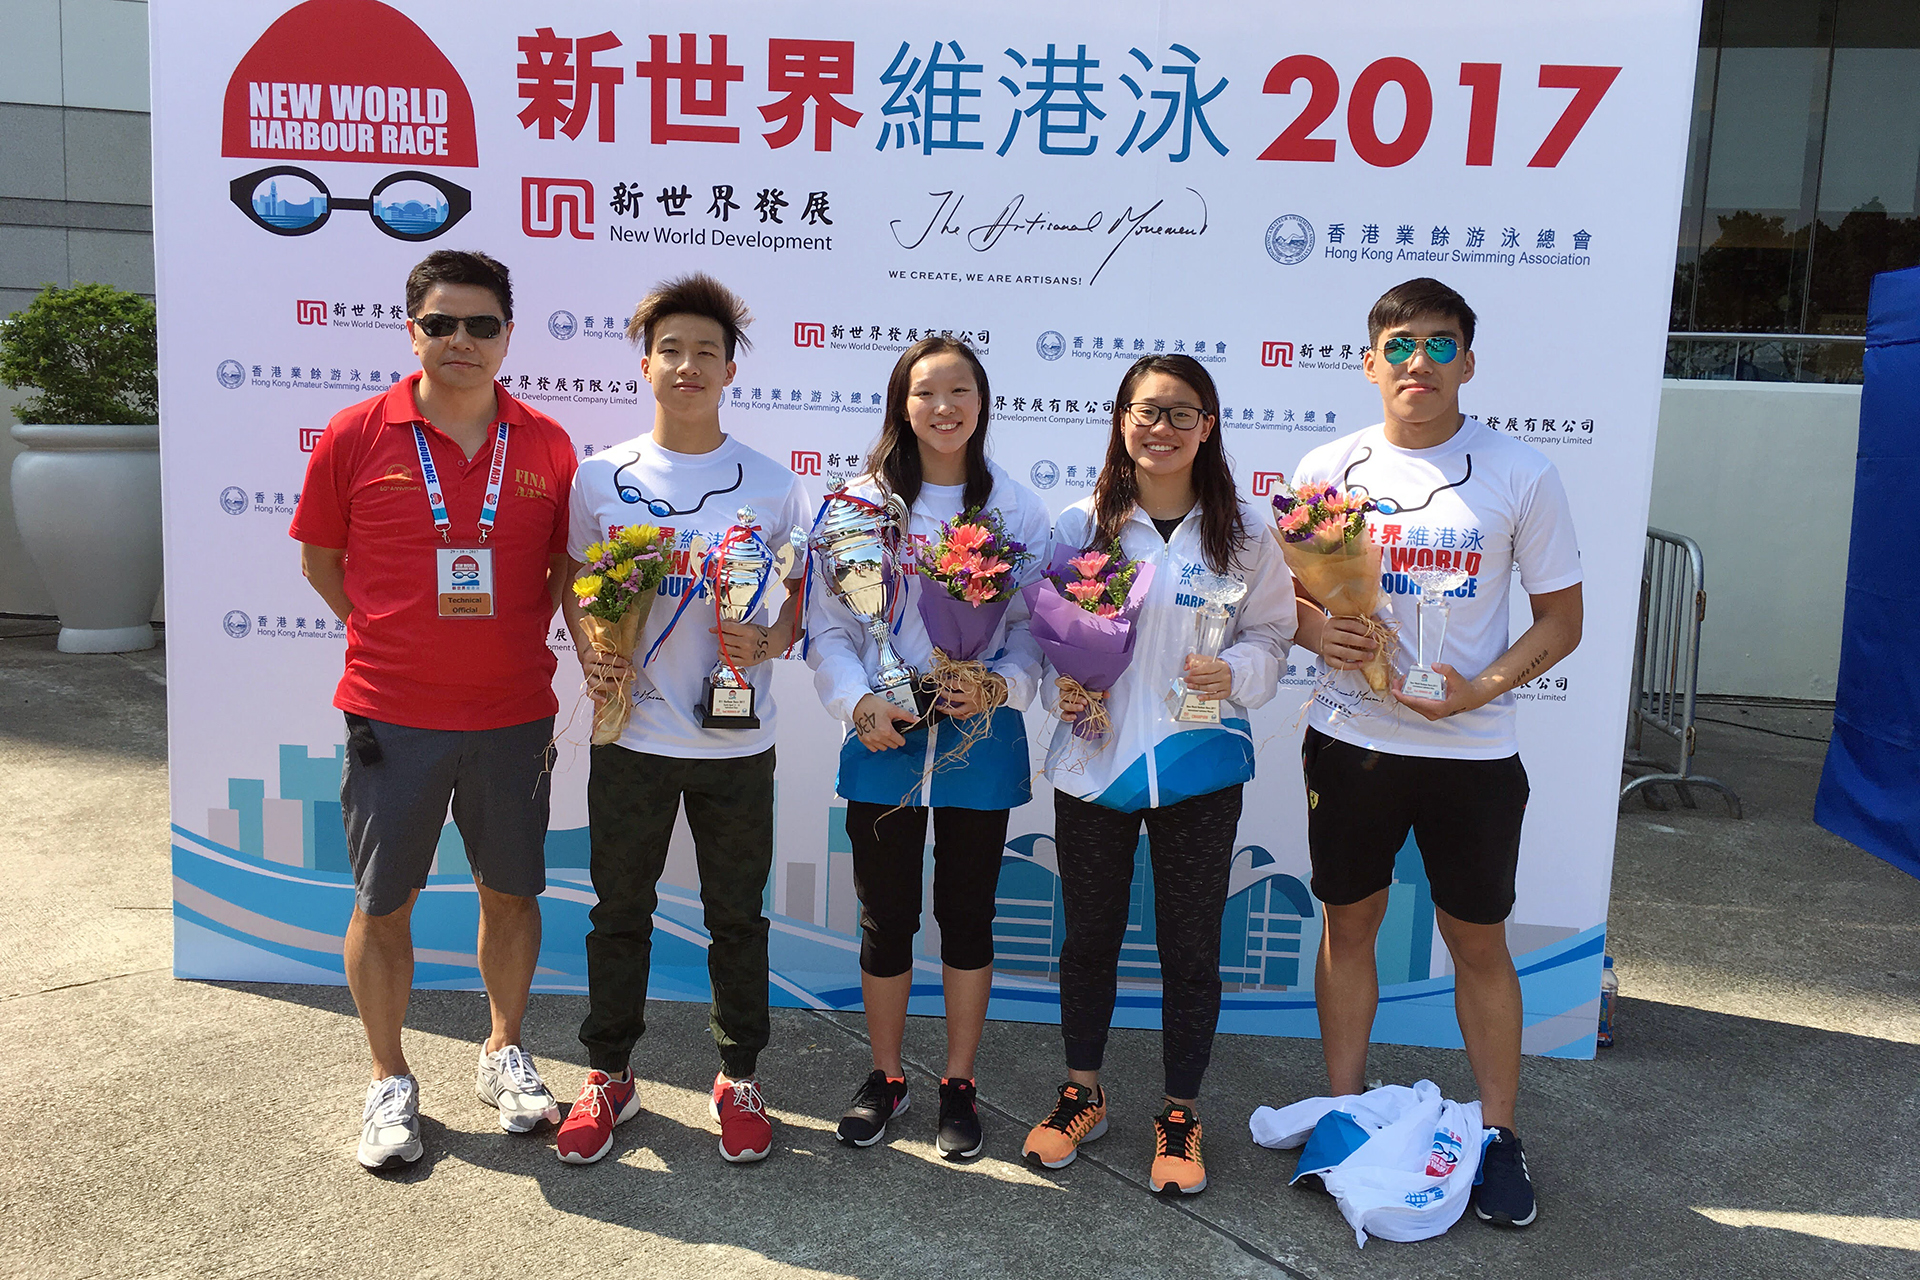 Win Tin Swimming Club - 2017 New World Harbour Race 1